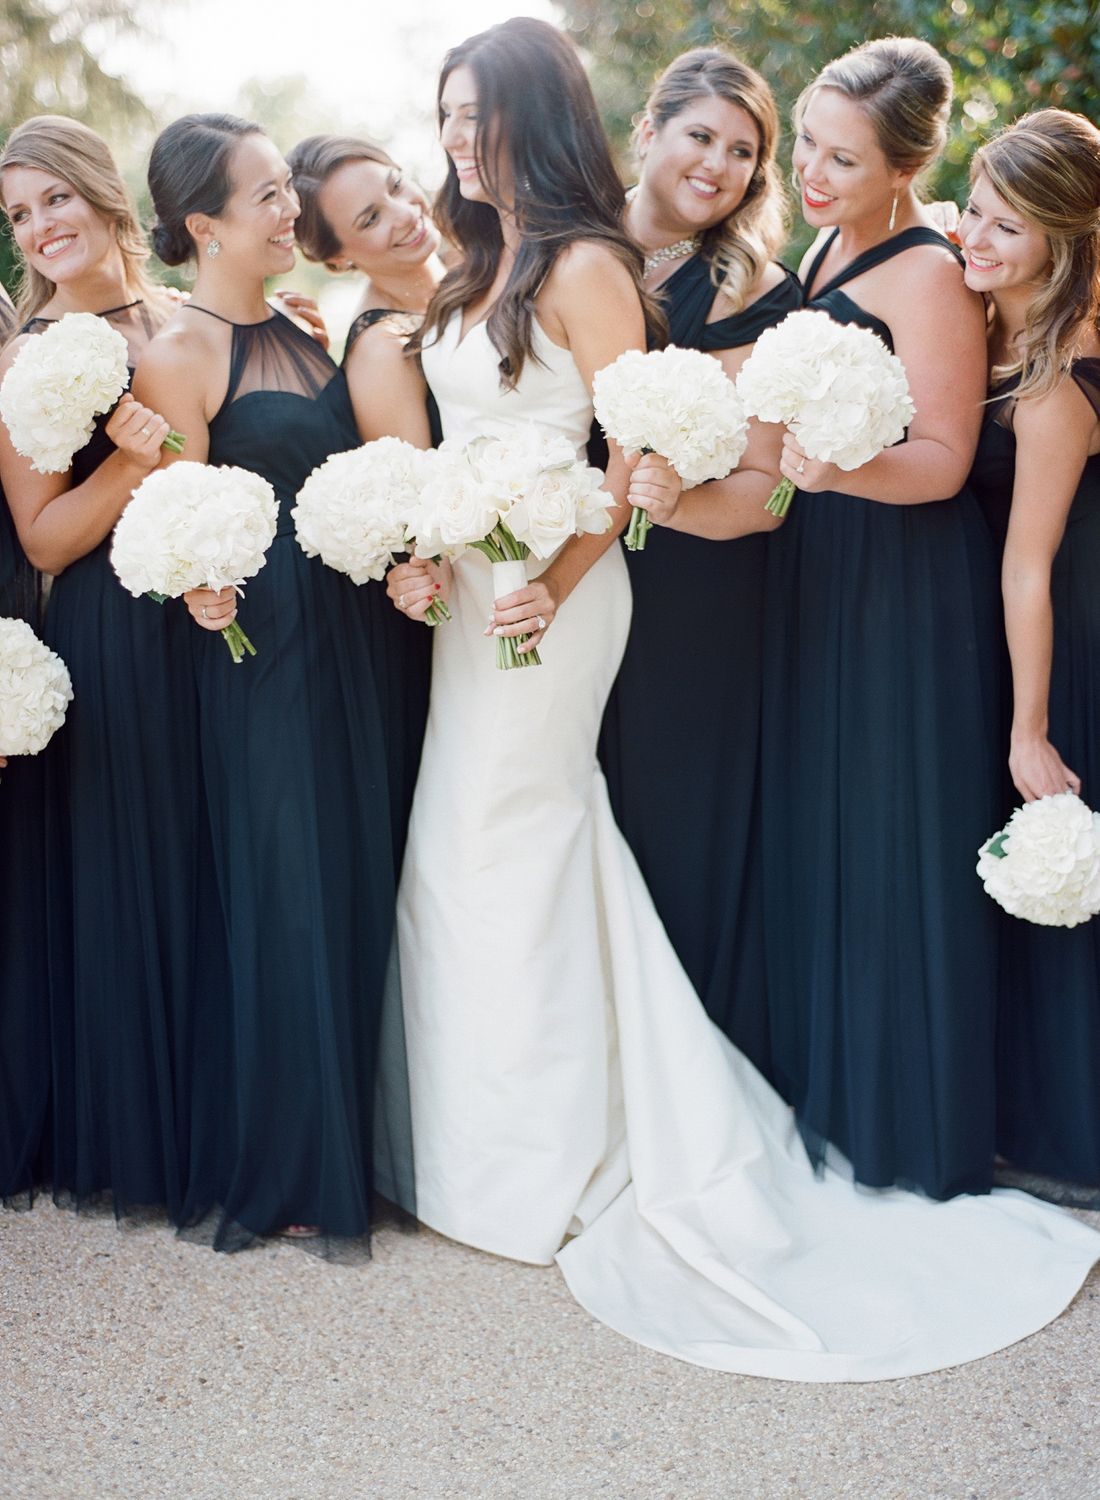 Why Bridesmaids In Black Is Super Chic Amsale Bridesmaid Black Bridesmaid Dresses Wedding Dresses [ 1500 x 1100 Pixel ]